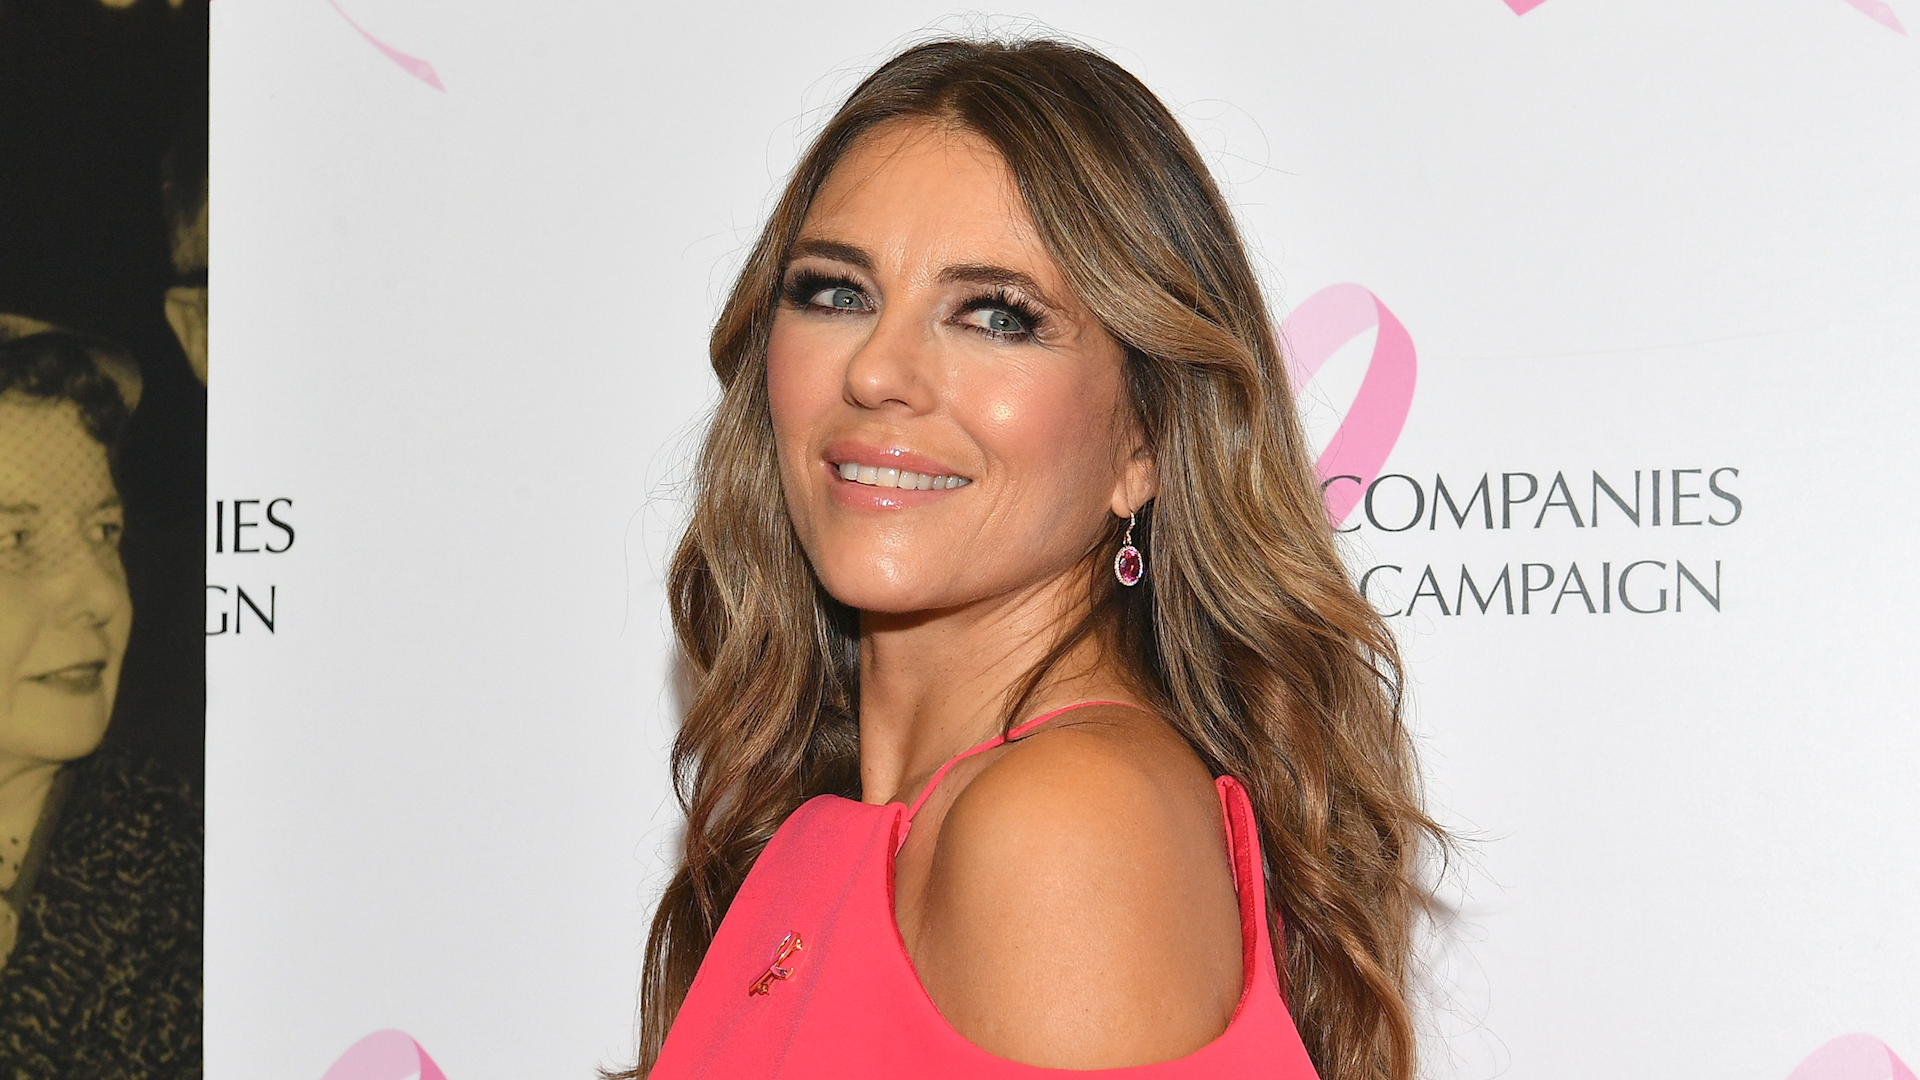 Liz Hurley is learning to rap